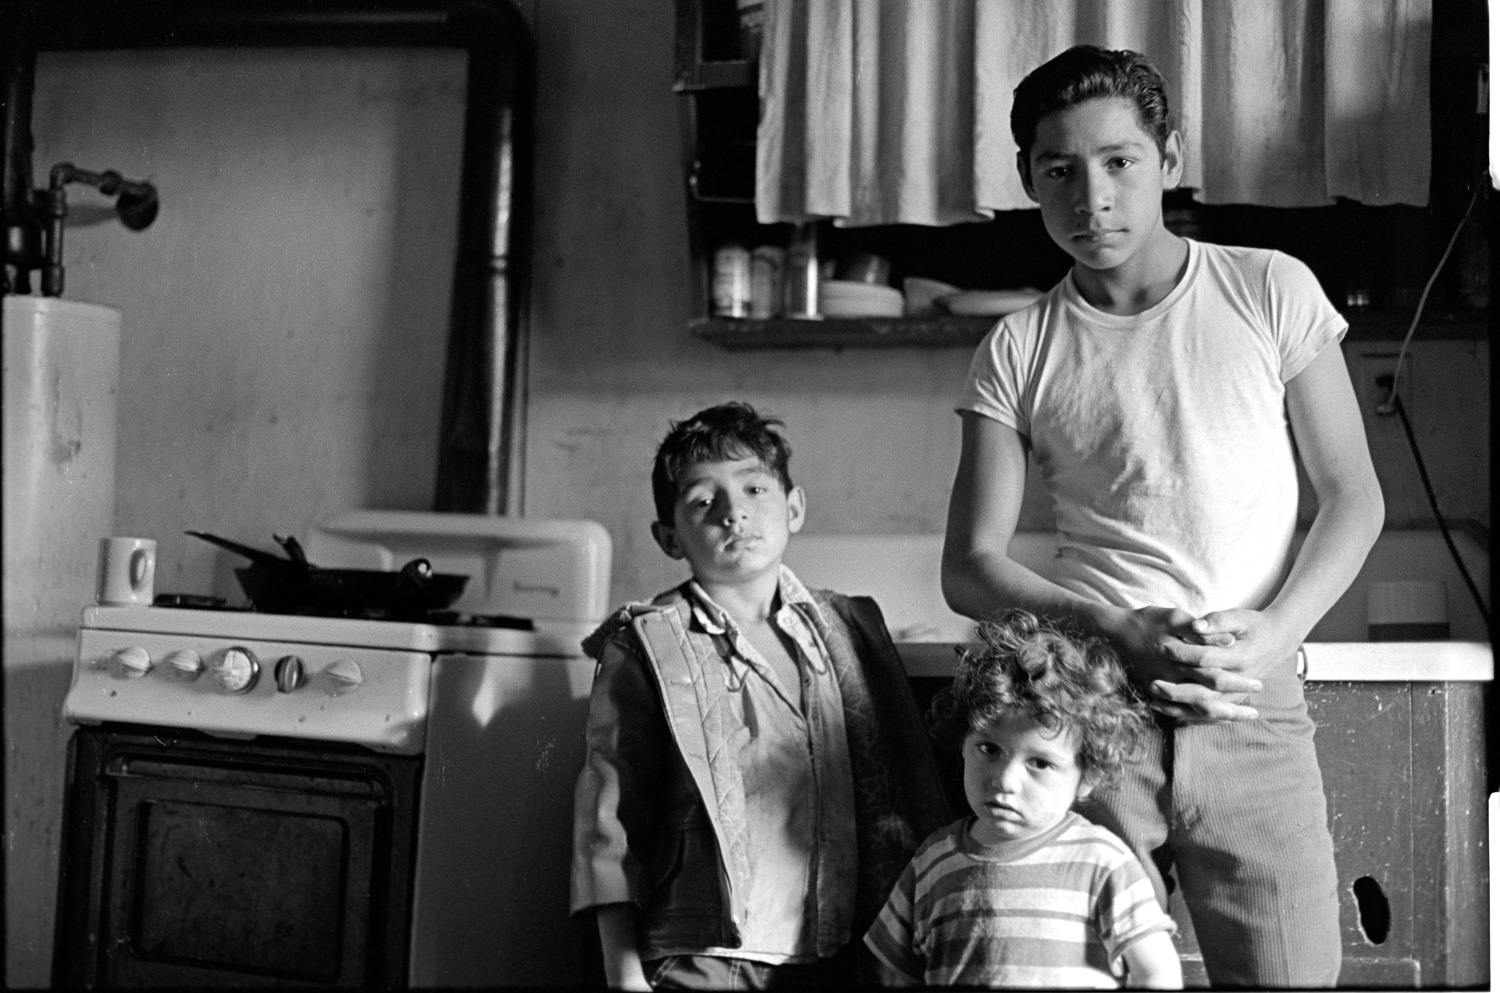 These three boys are the sons of farm workers in Watsonville, California. This is their kitchen.